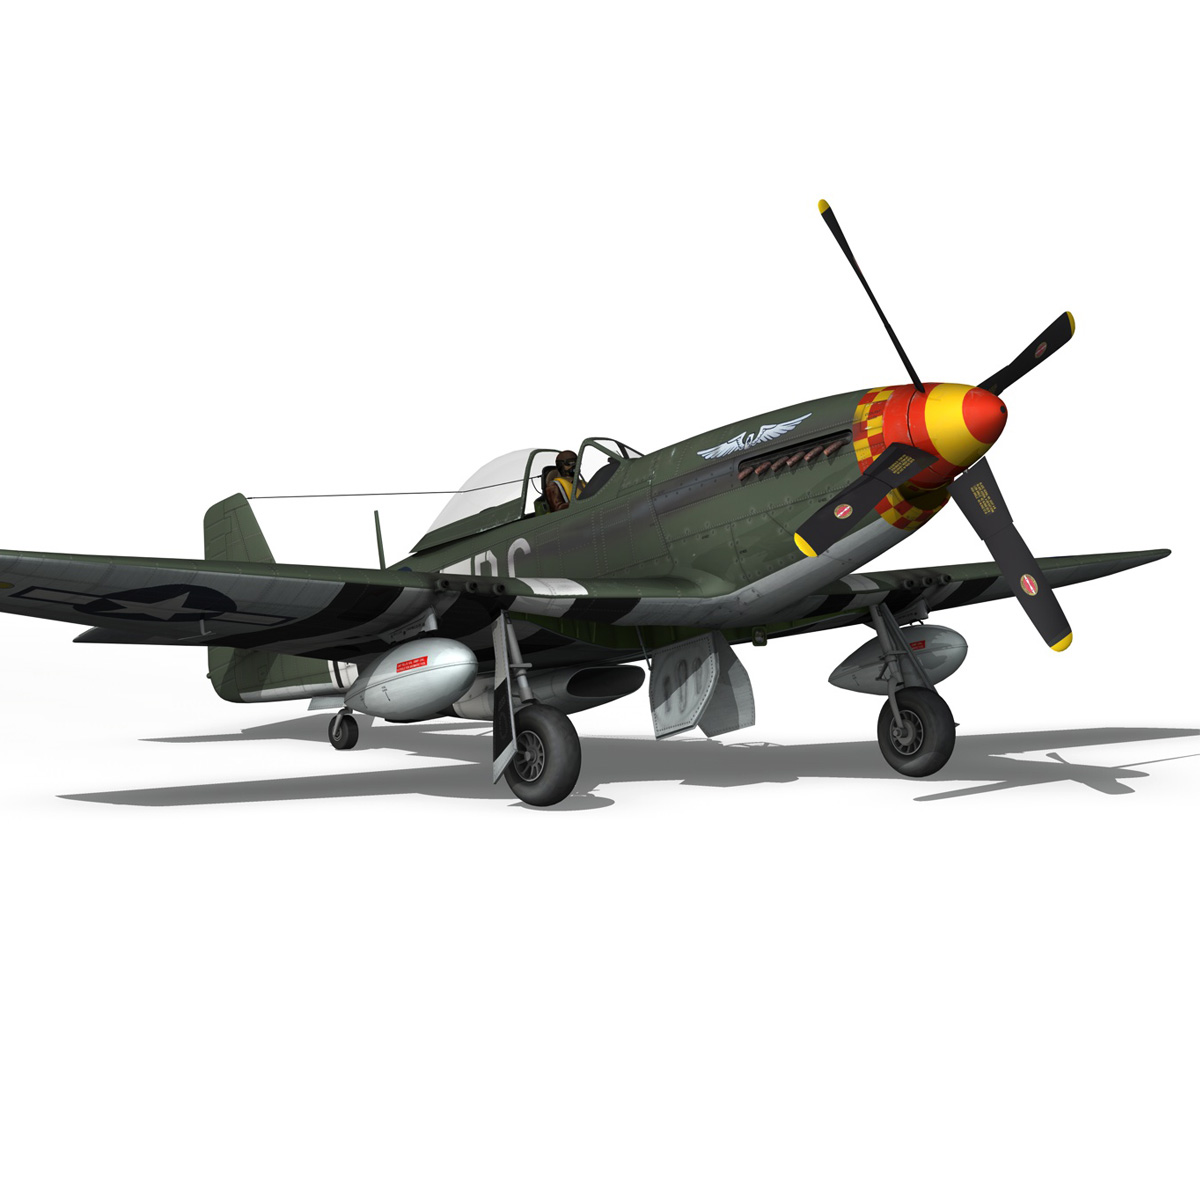 north american p-51d mustang – speedball alice 3d model fbx c4d lwo obj 280323